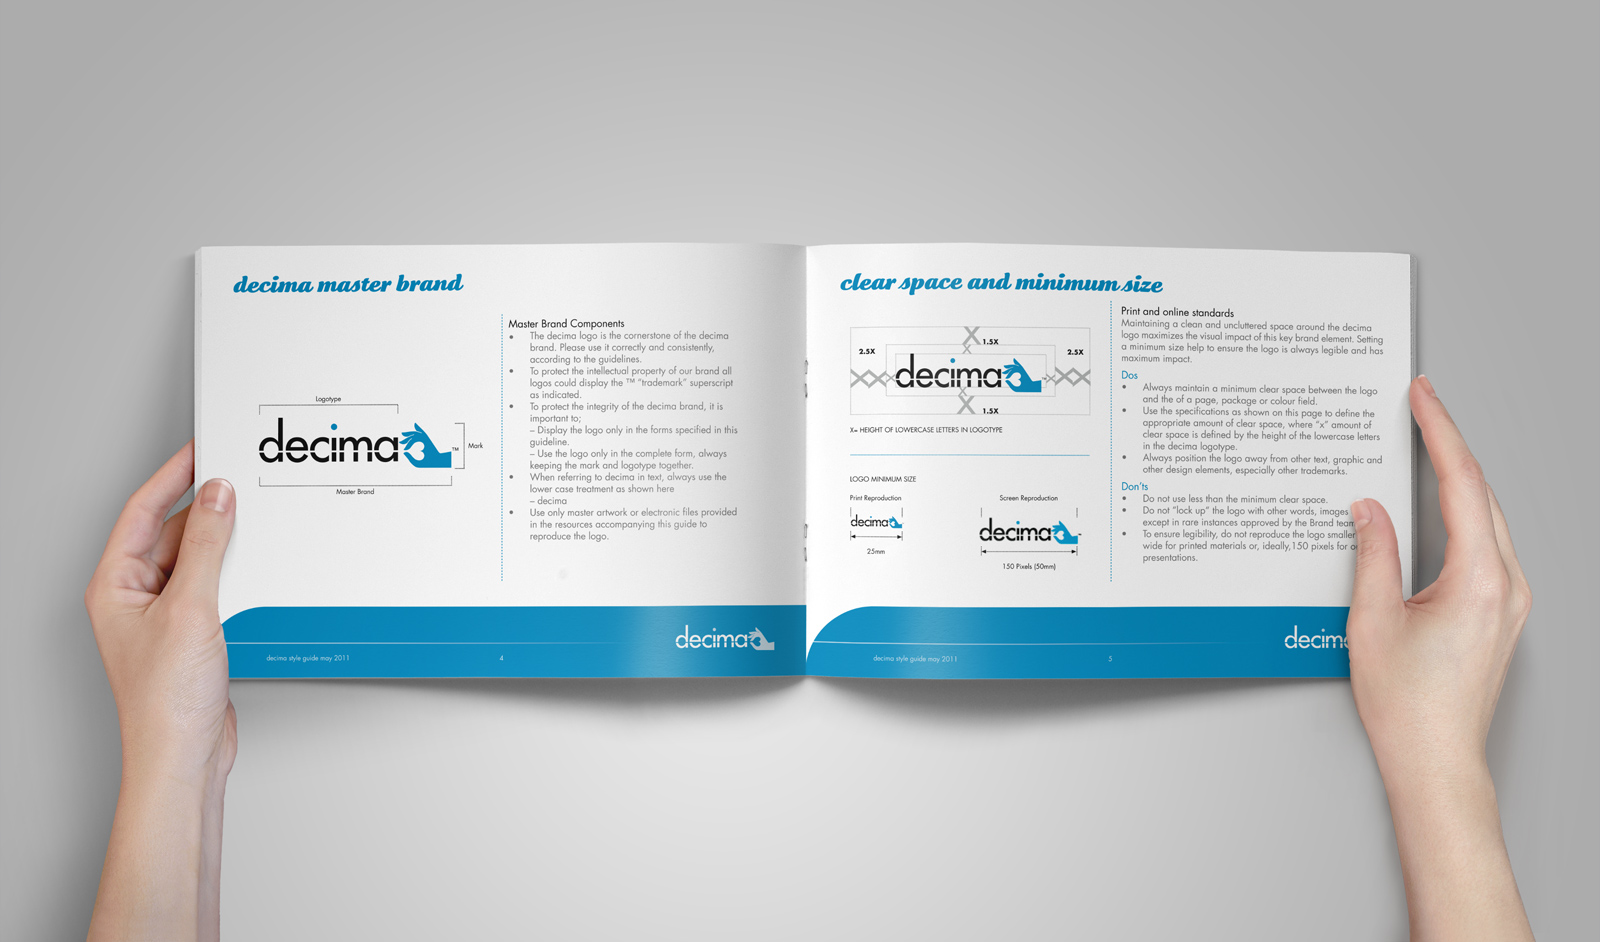 """Inside spread from the Decima corporate style guide, page headings read """"decima style guide"""", """"the logo"""". Brand use document, Graphic Standards guide."""